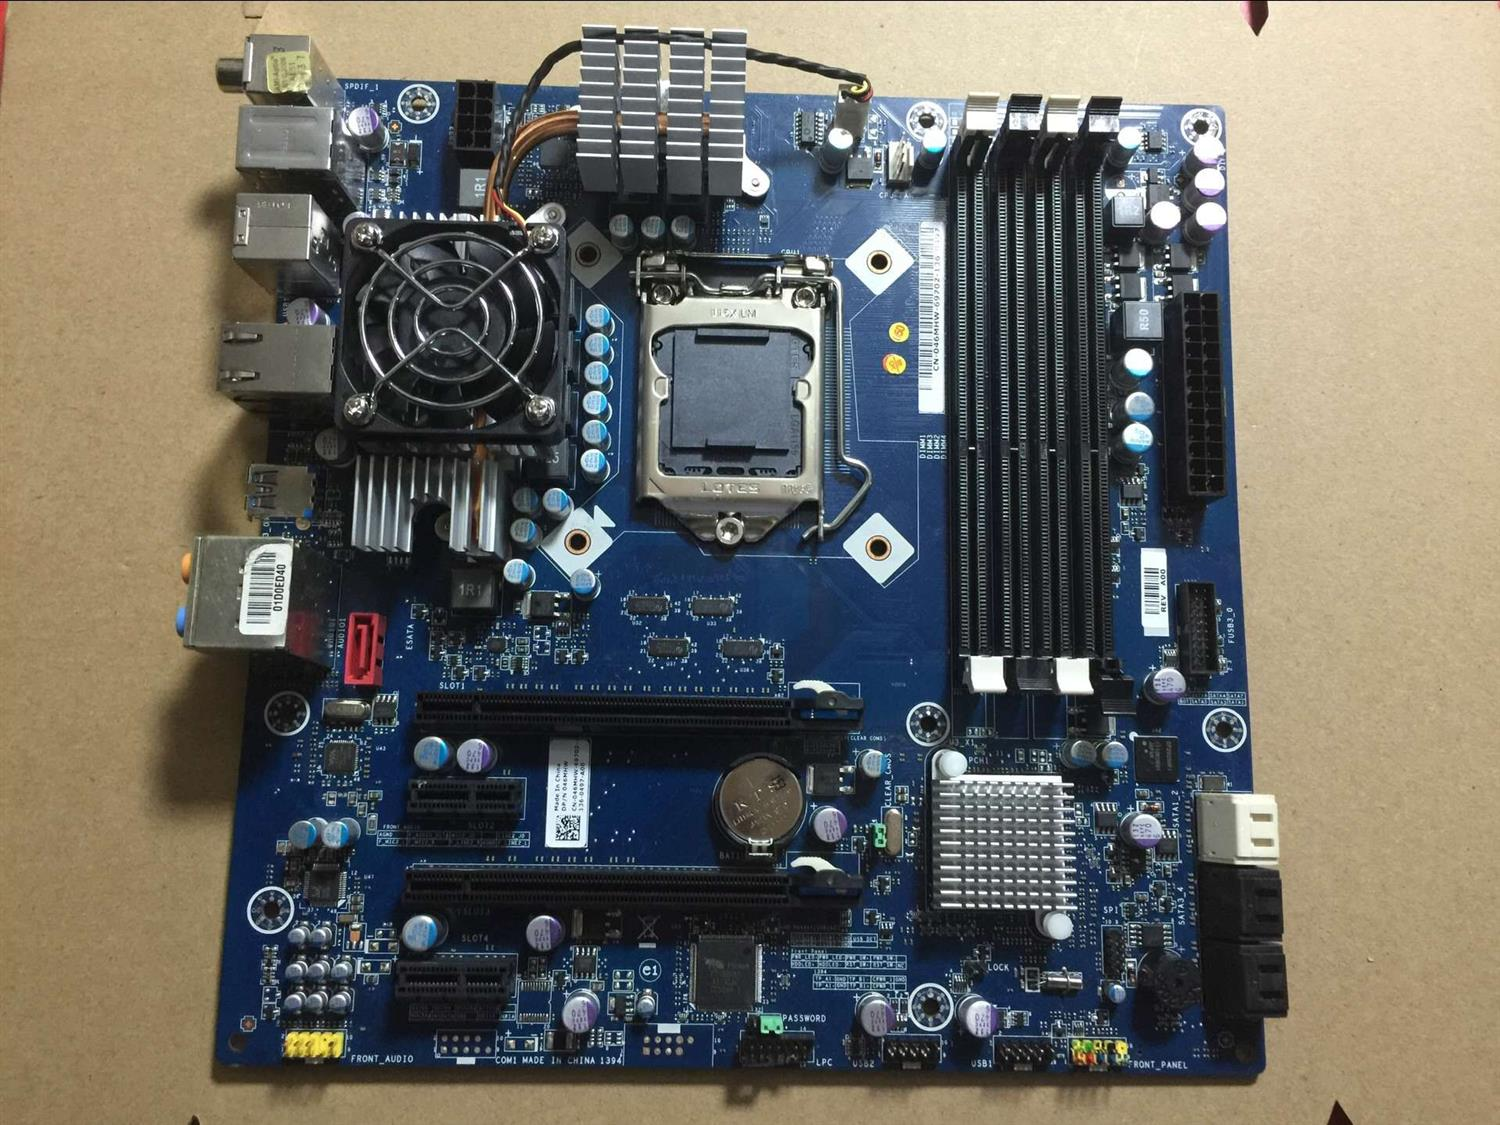 Original disassemble,for DELL Alienware Aurora R3 LGA1155 P67 Desktop Motherboard asus p5kpl se desktop motherboard p31 socket lga for 775 core pentium celeron ddr2 4g atx uefi bios original used mainboard